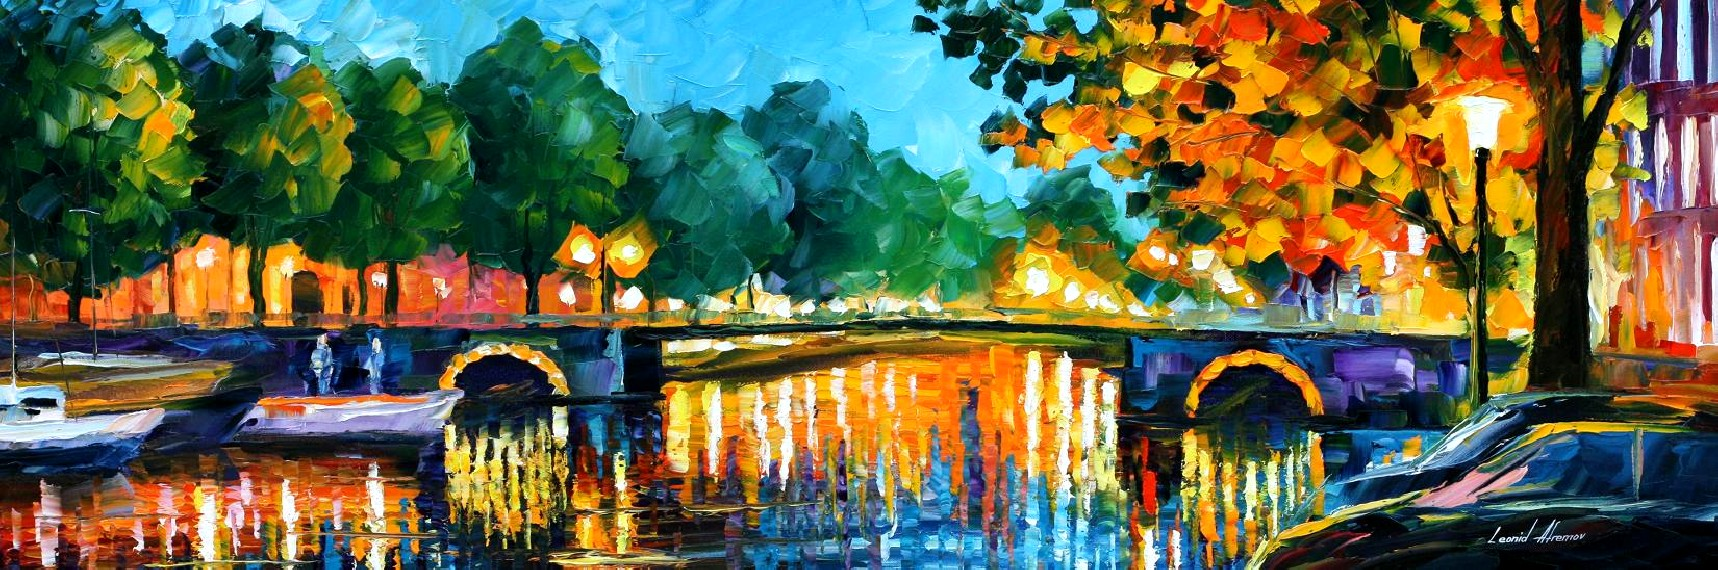 Modern impressionism palette knife oil painting kp15210